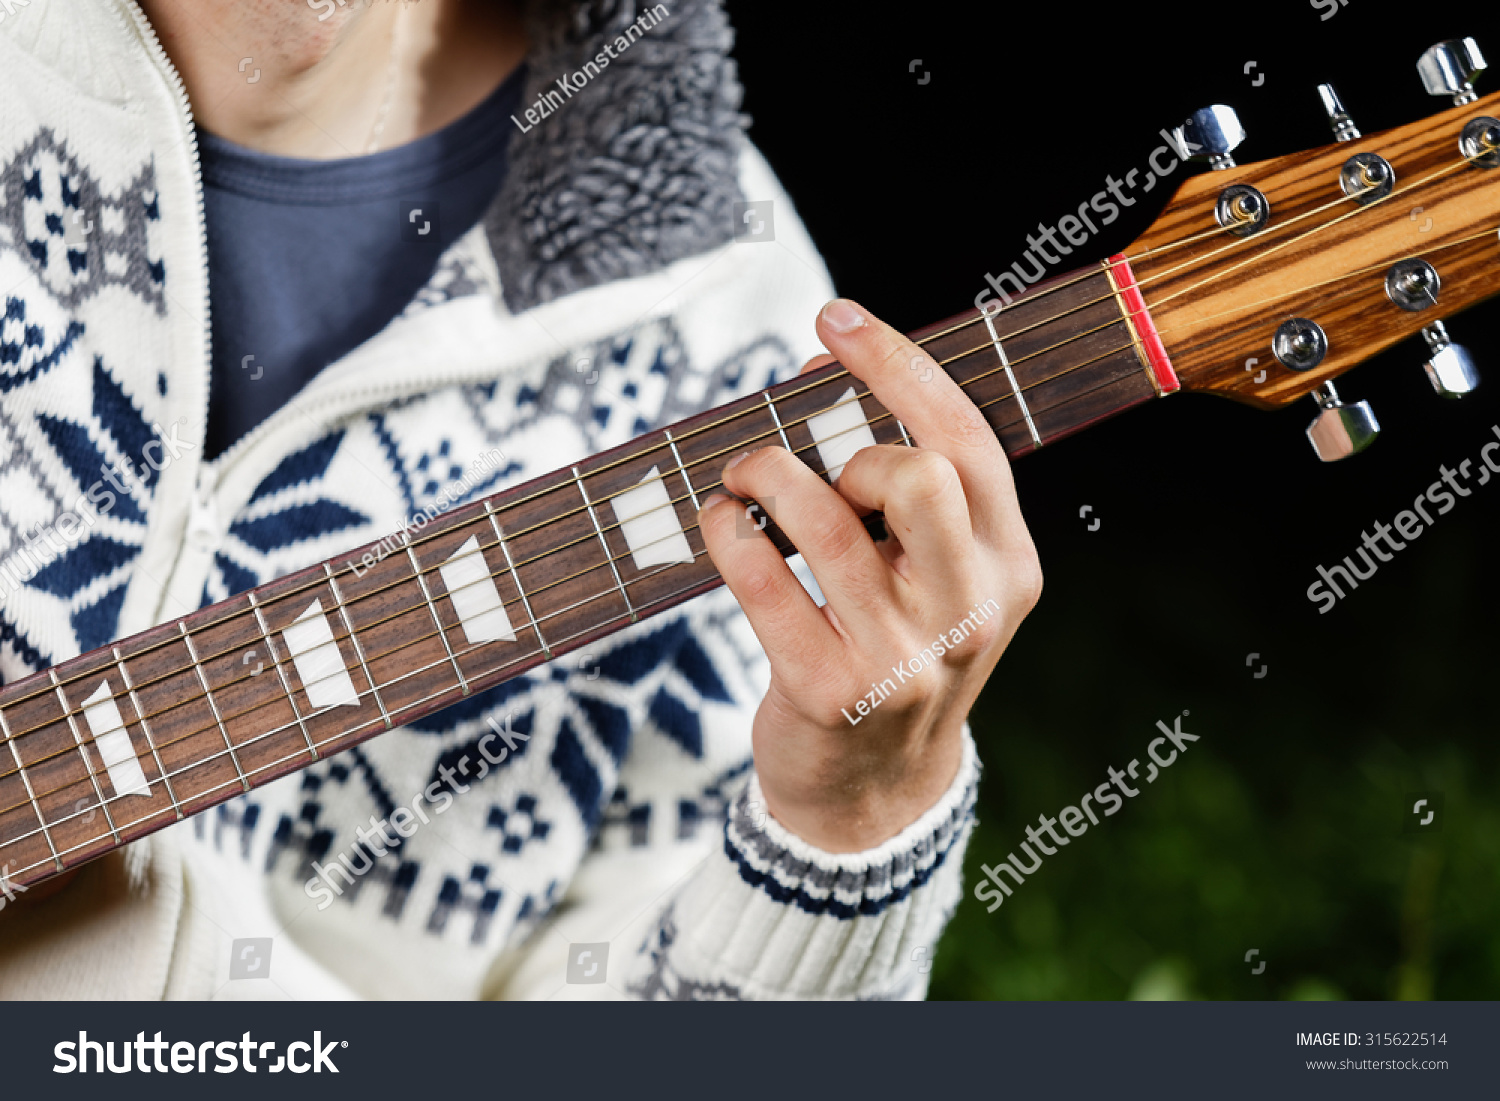 Hm minor guitar chord stock photo 315622514 shutterstock hexwebz Choice Image